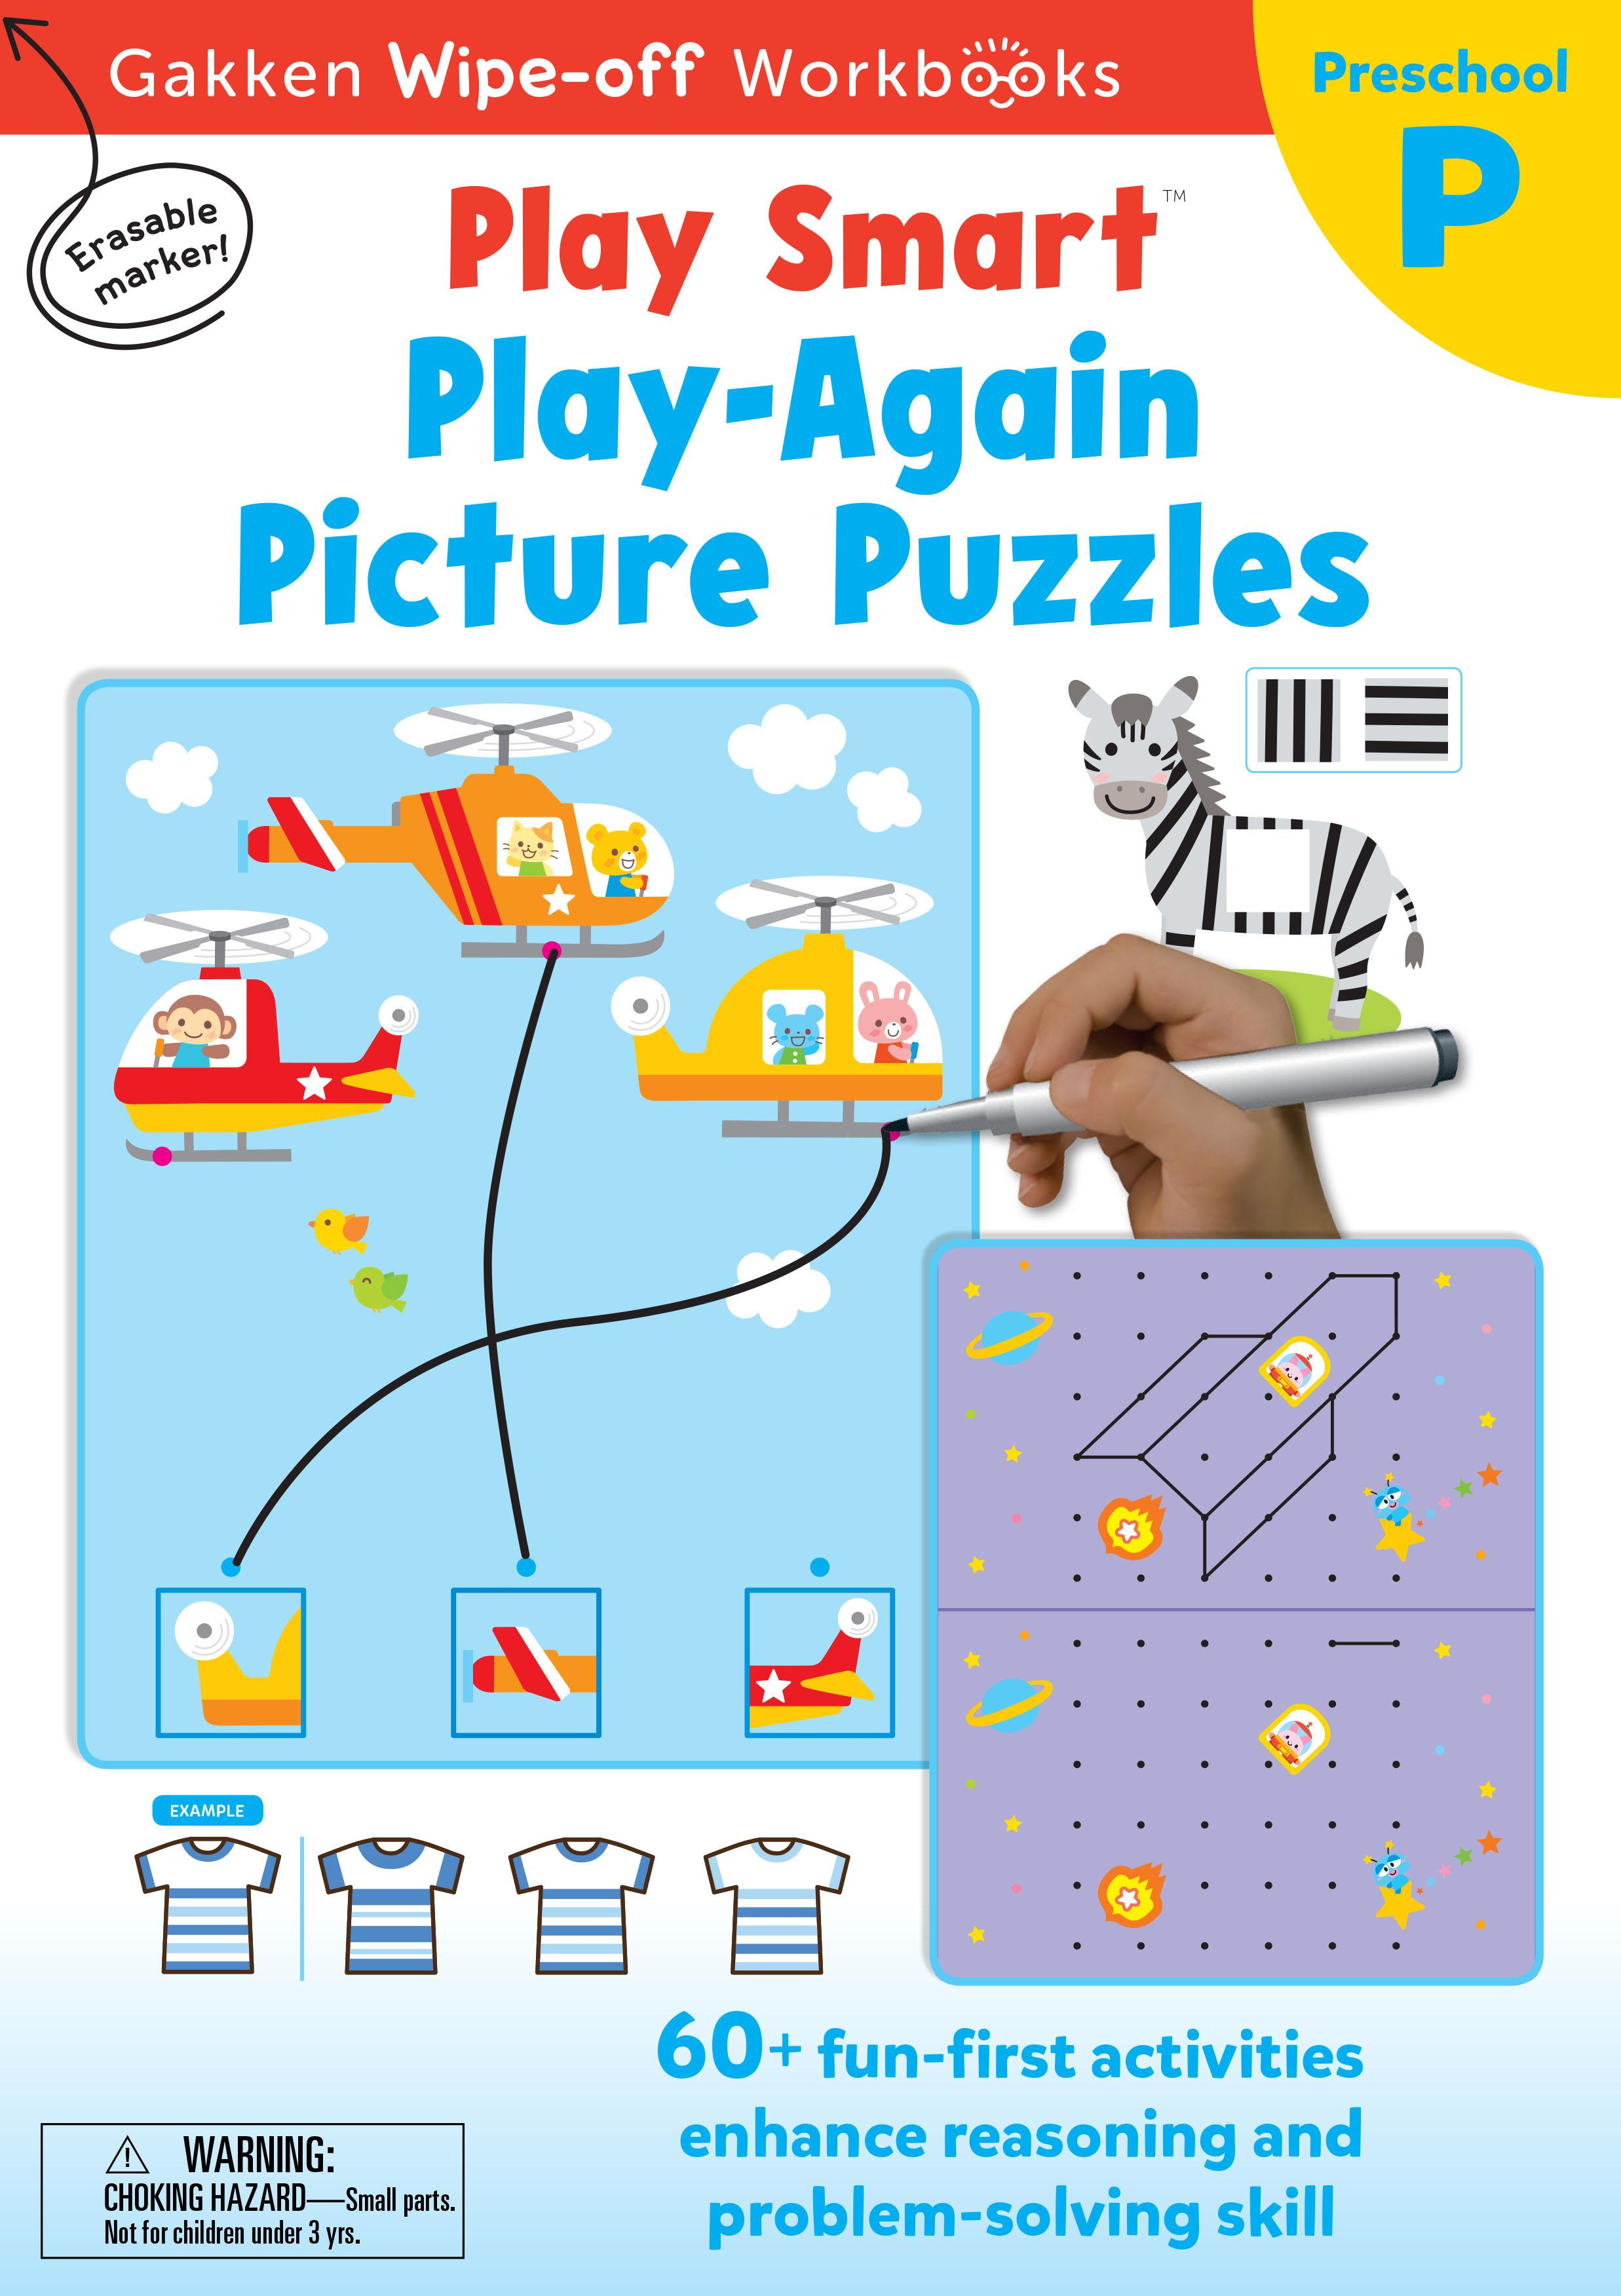 PlaySmart : Wipe&Off Play Again Picture Puzzles